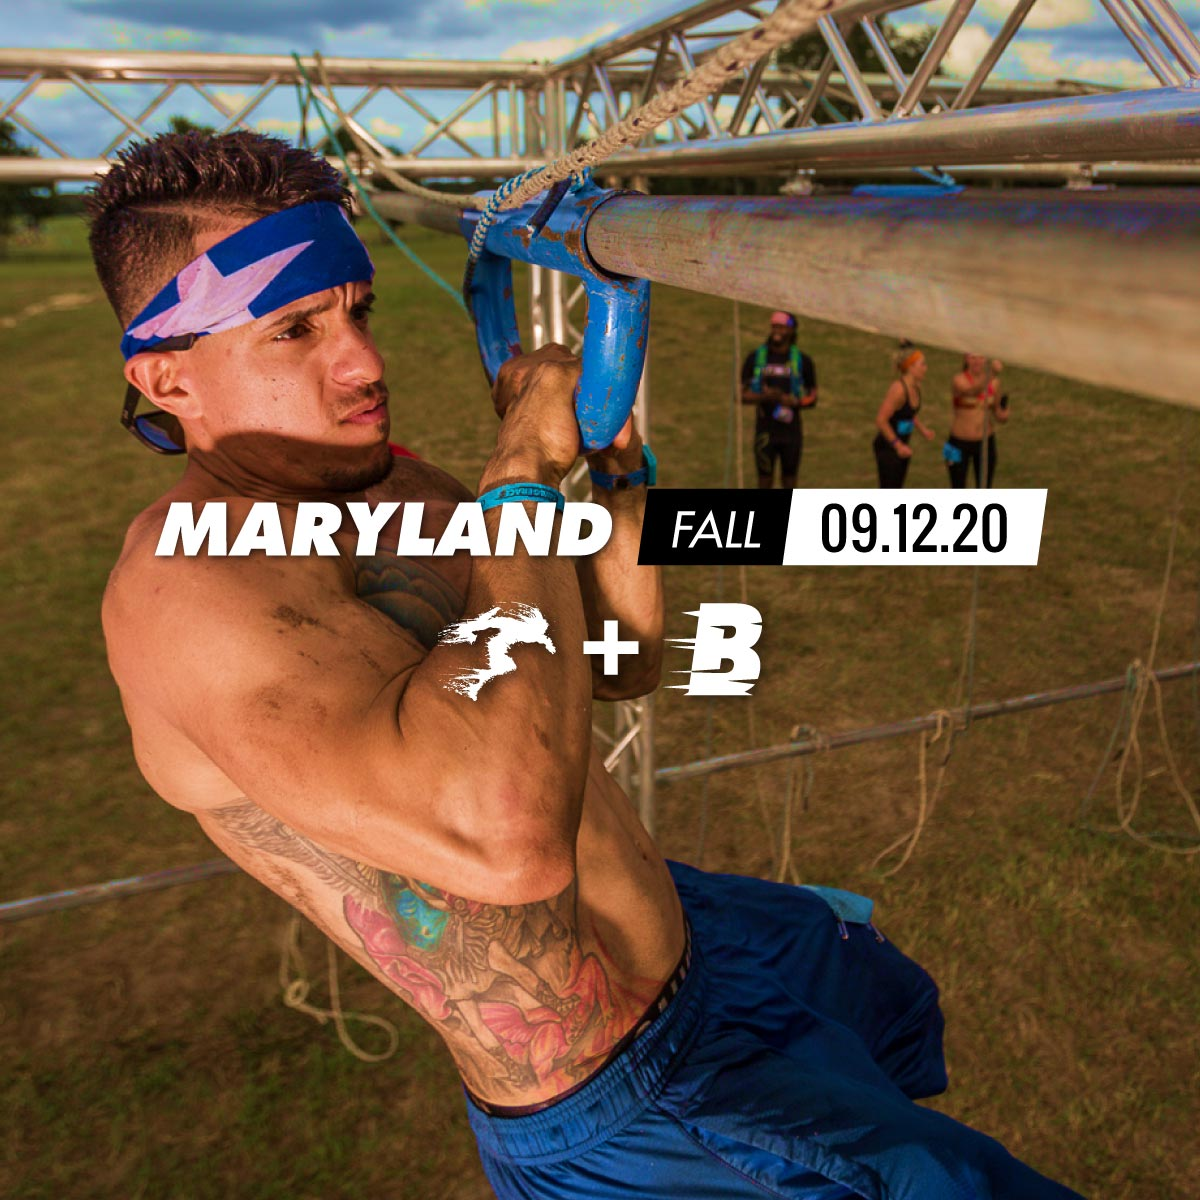 Savage Race Maryland Fall 2020